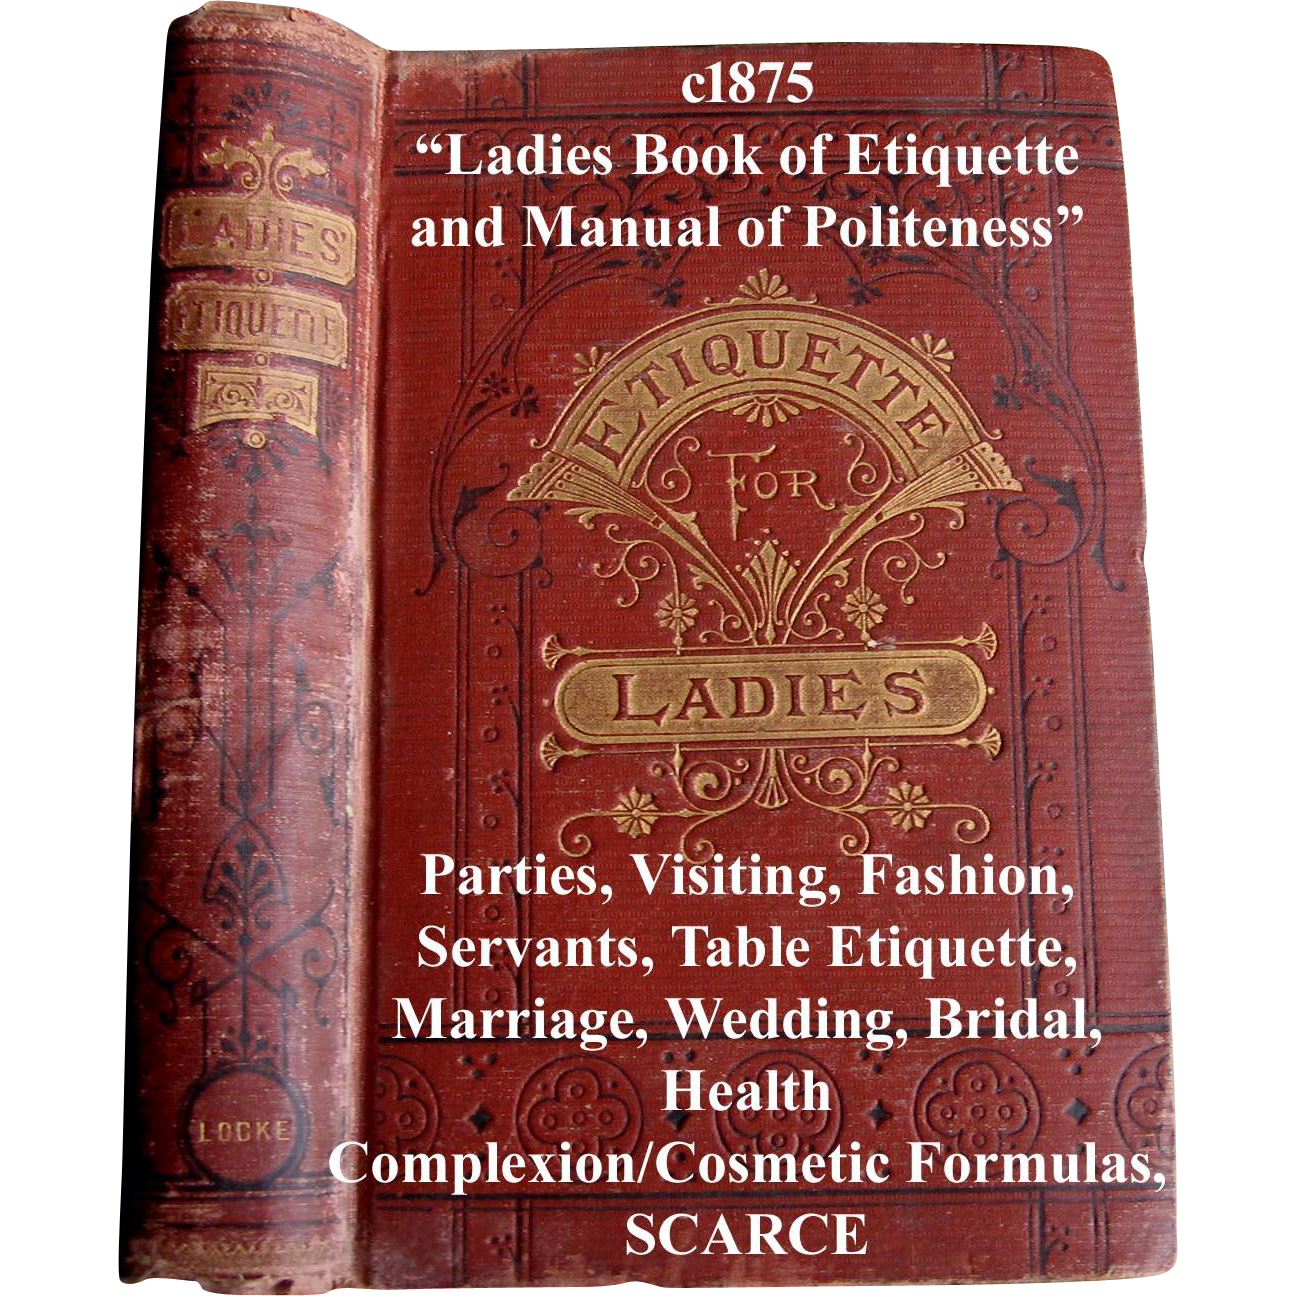 Wedding Gift Receipt Etiquette : c1875 Ladies Book of Etiquette and Manual of Politeness Hartley from ...